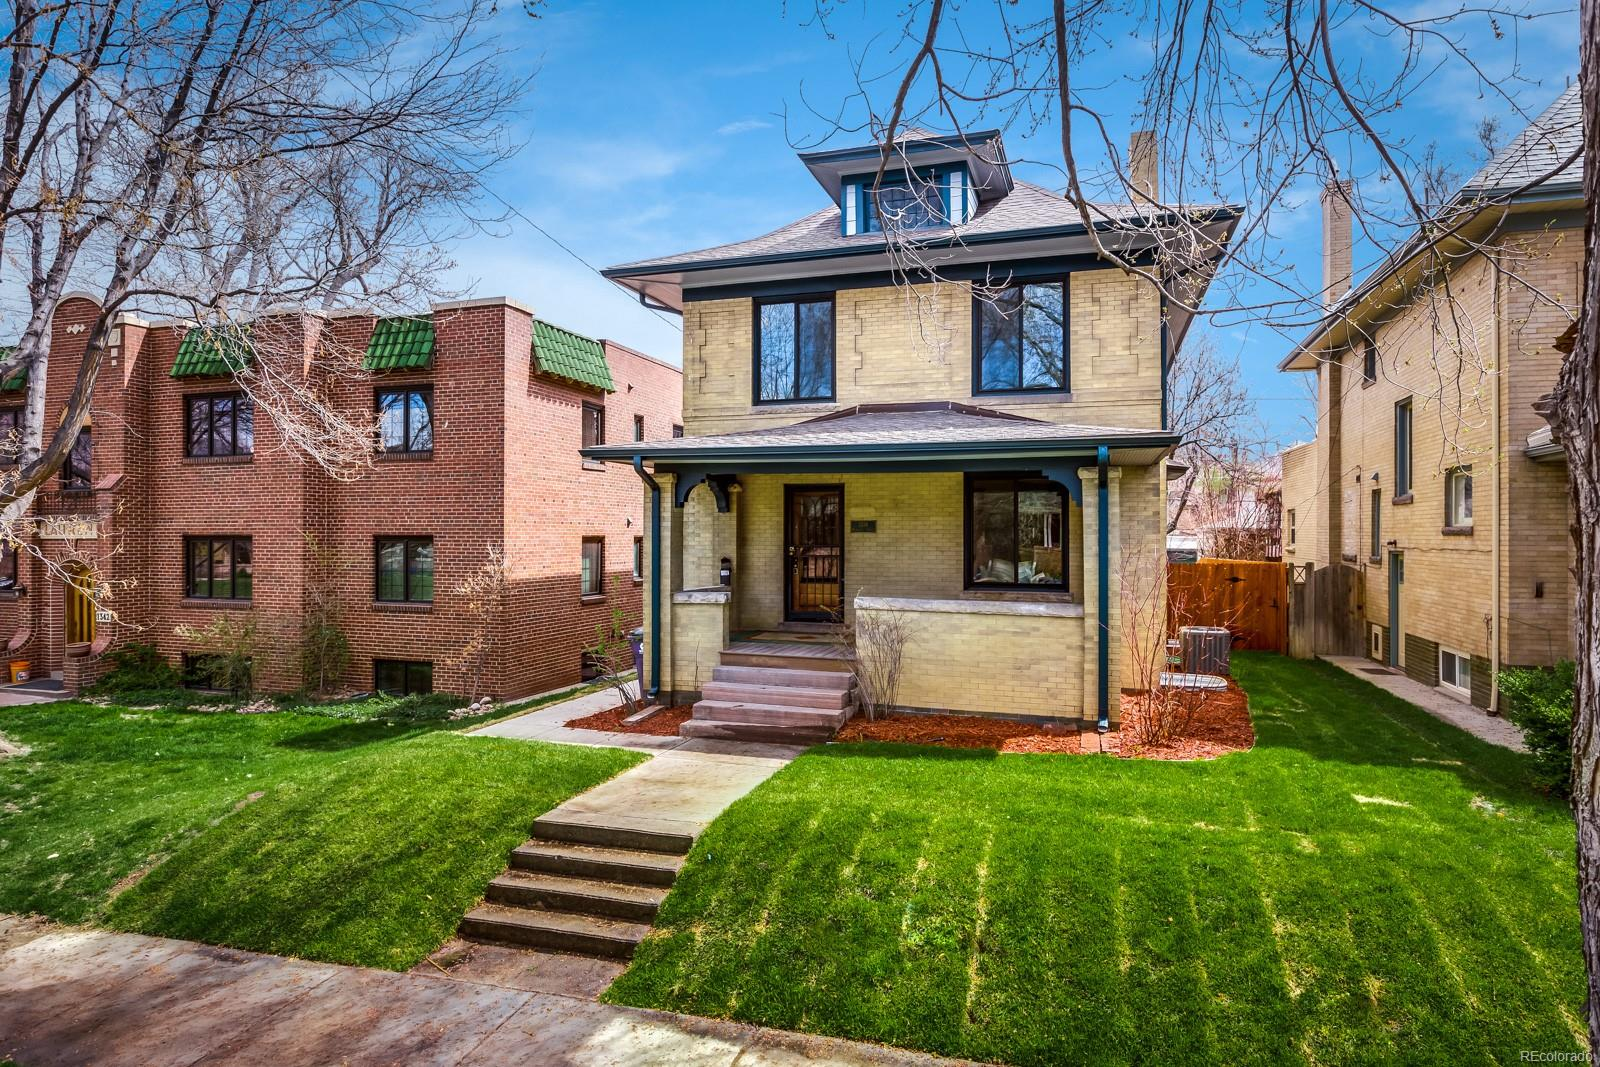 Denver Square fully remodeled and ready for another 100 years